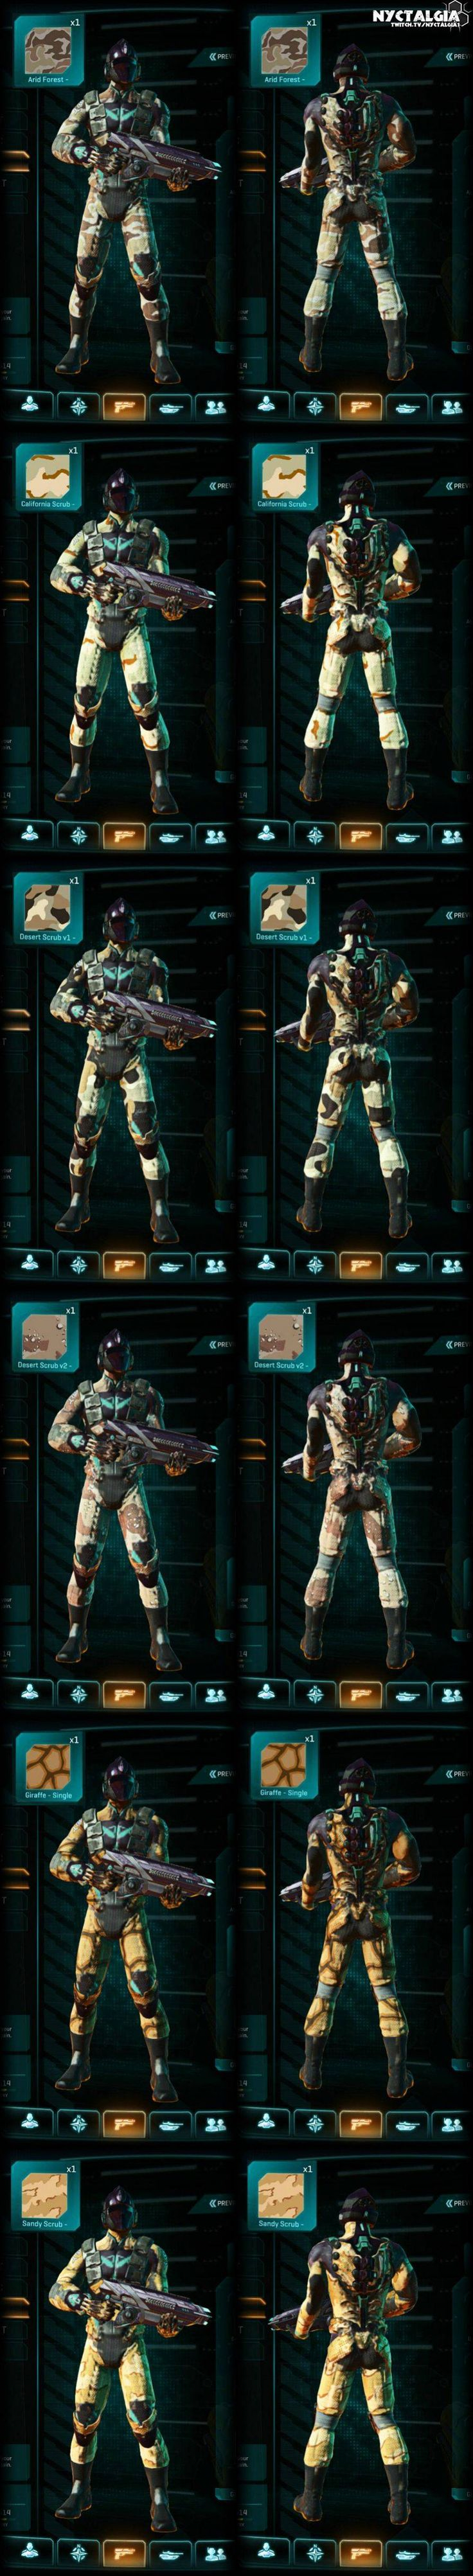 Nyctalgia's PlanetSide 2 Camouflage Preview Pictures - http://freetoplaymmorpgs.com/planetside-2/nyctalgias-planetside-2-camouflage-preview-pictures